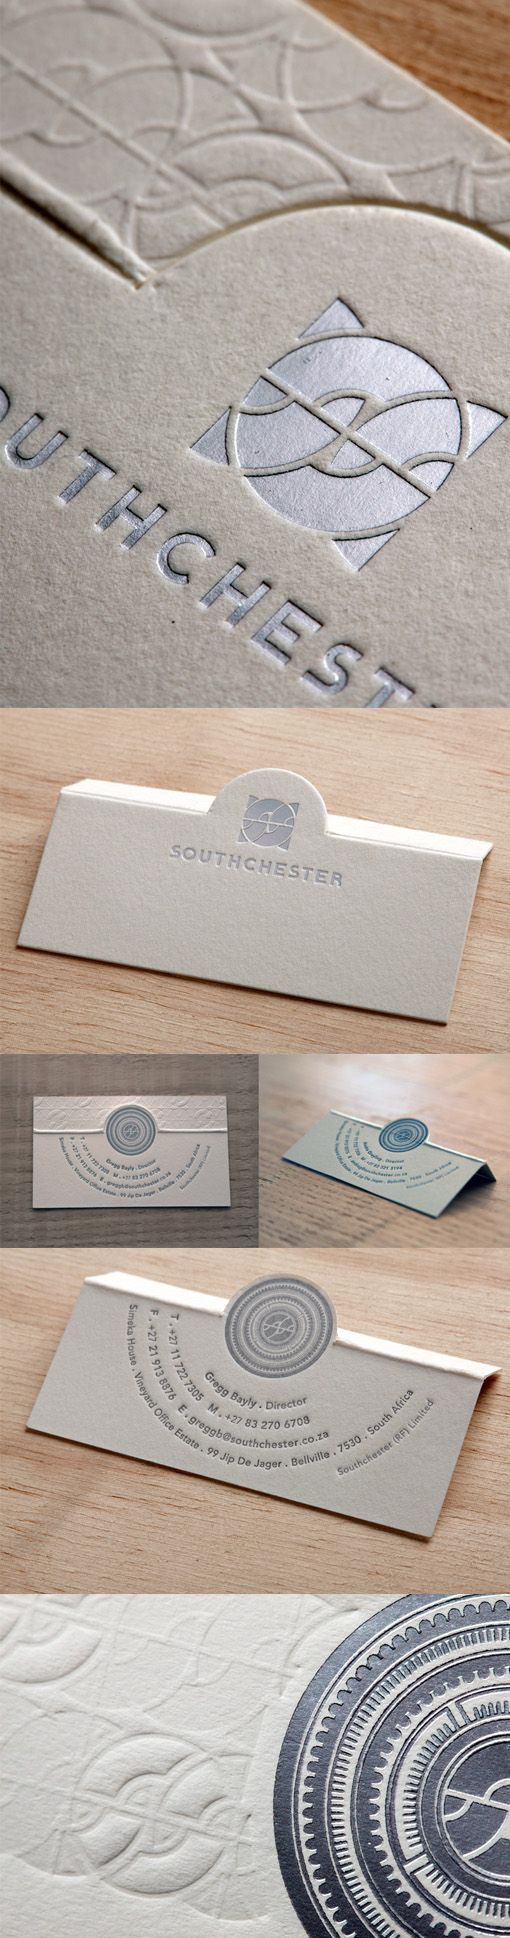 This clever business card design uses a couple of fancy techniques in moderation to create an interesting and interactive effect.